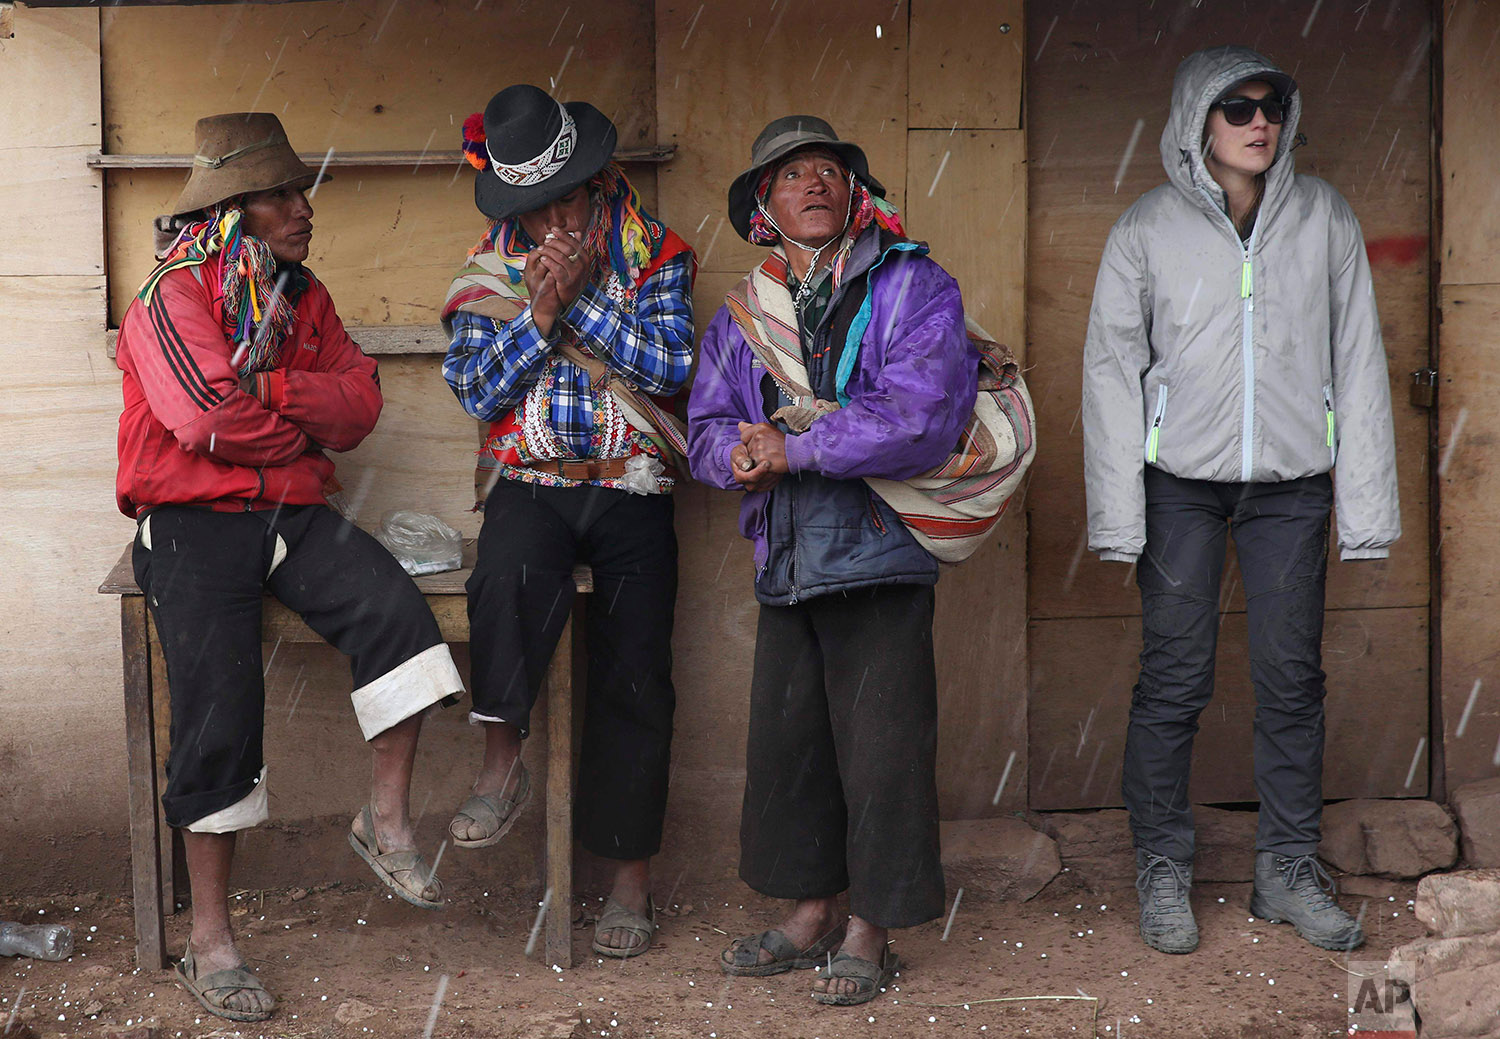 In this April 5, 2018 photo, Andean muleteers and a tourist take cover from a rain shower during a tour to Rainbow Mountain, in Pitumarca, Peru. (AP Photo/Martin Mejia)